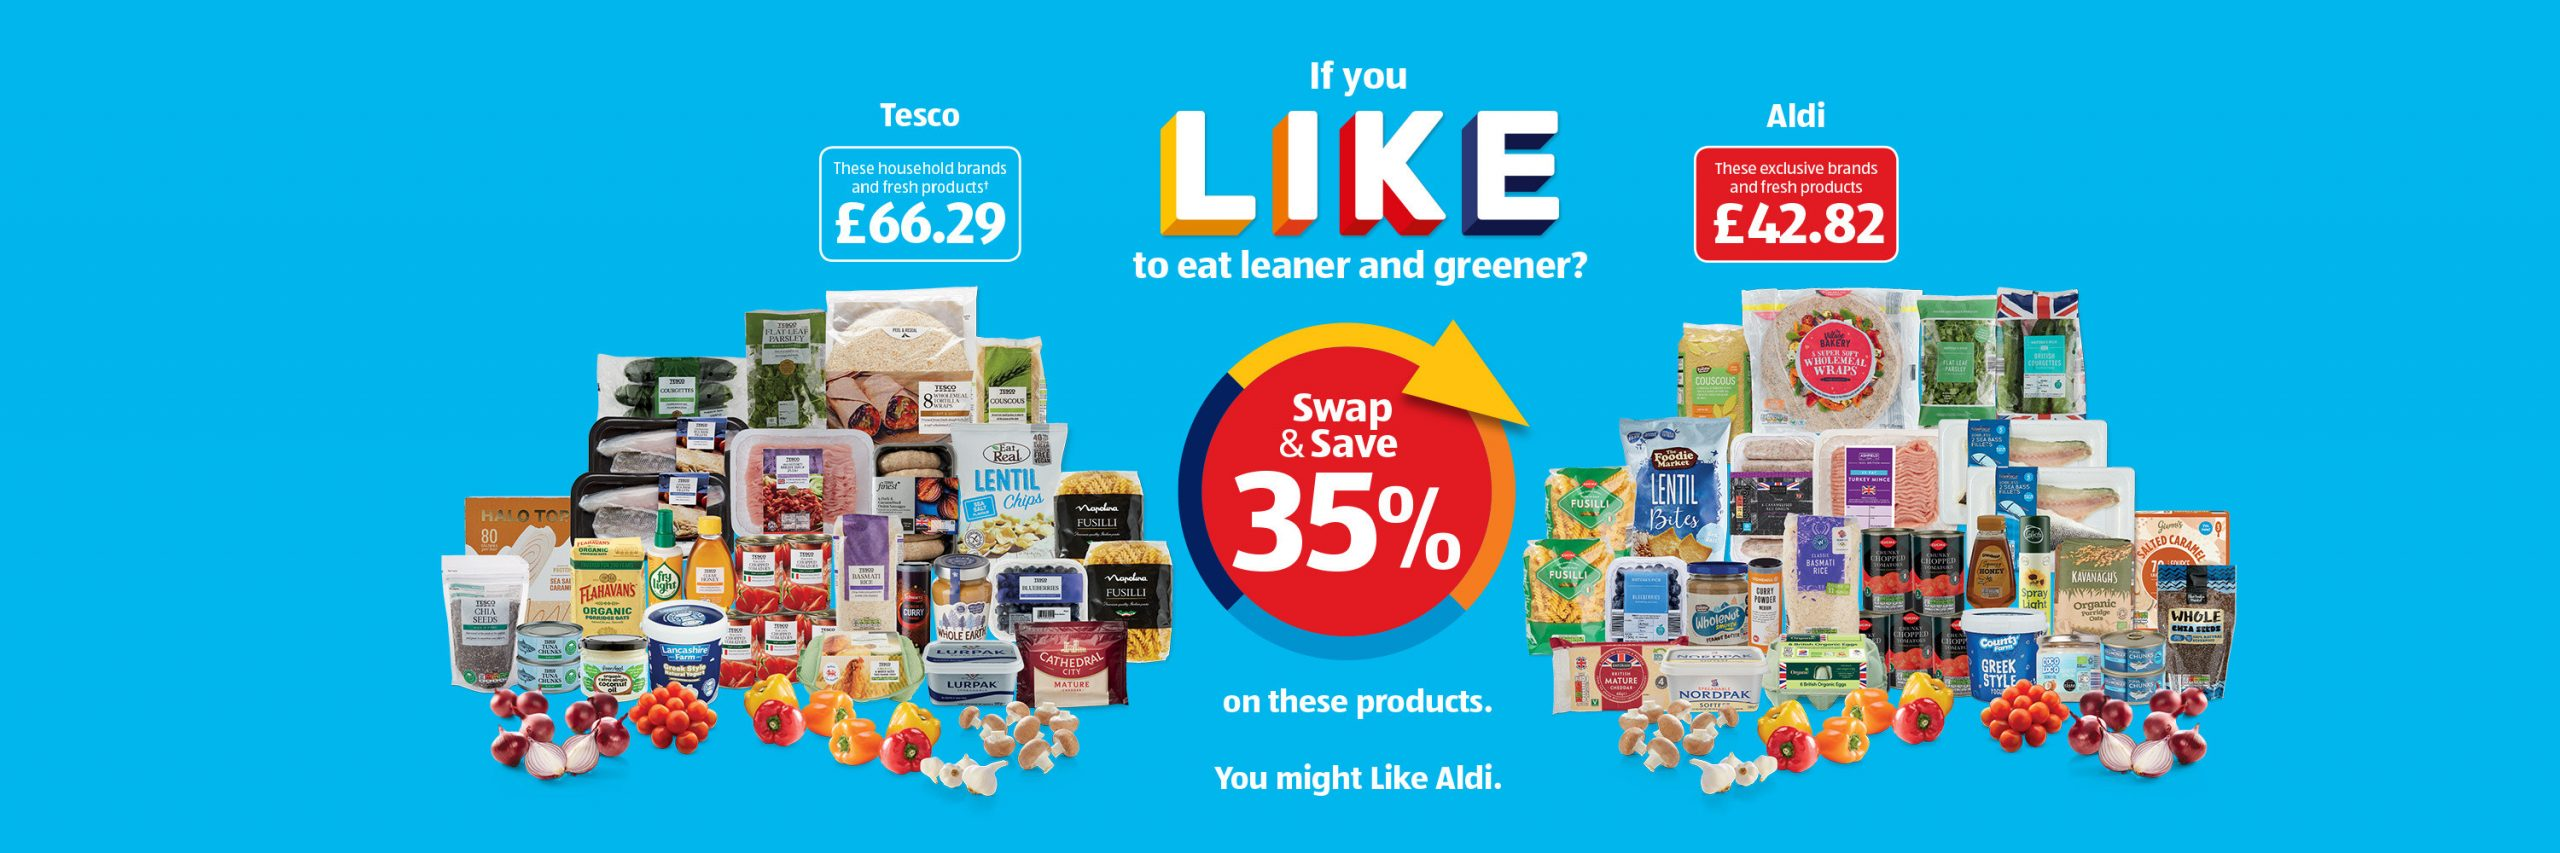 ALDI Tesco Trolley Comparison Press! Swap & Save 35% to eat learner and greener Products